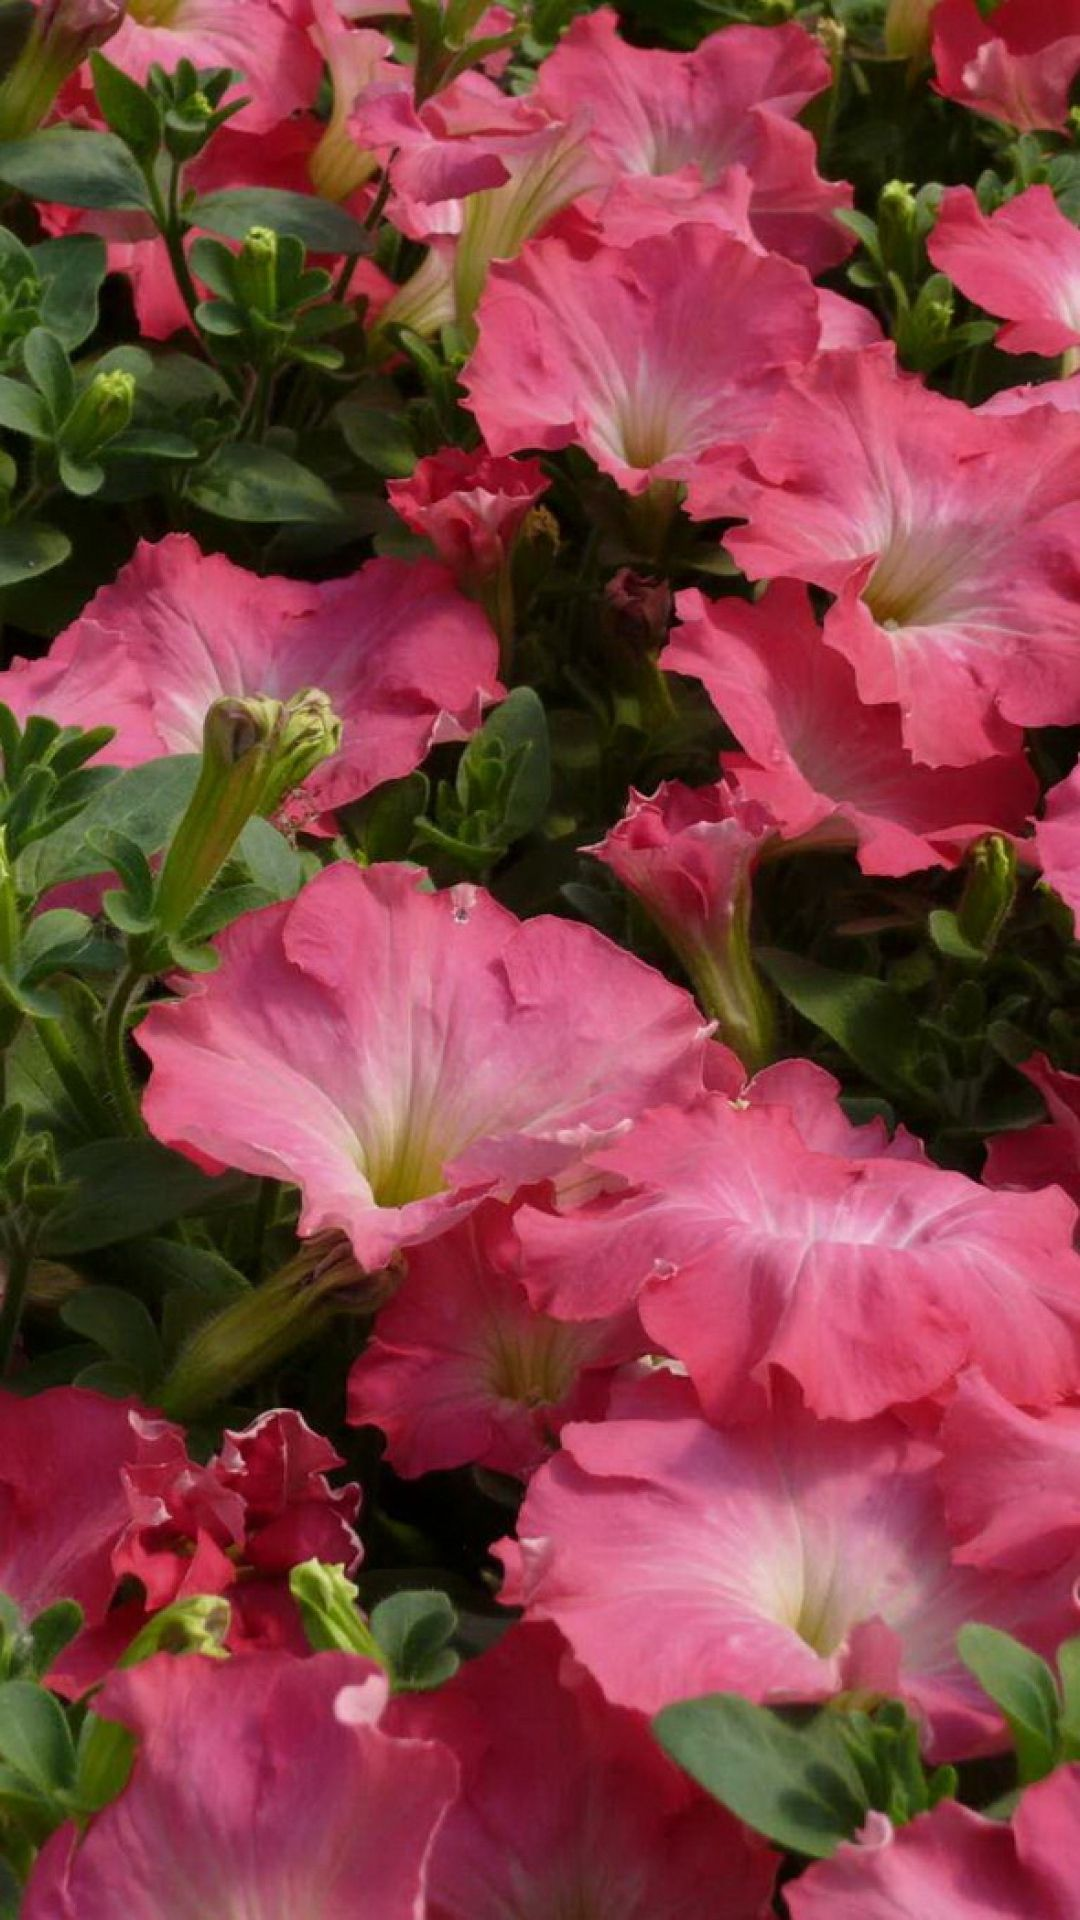 Petunia Flowers Pink Tender Green Beautiful Flowers Pictures Flowers Nature Beautiful Flowers